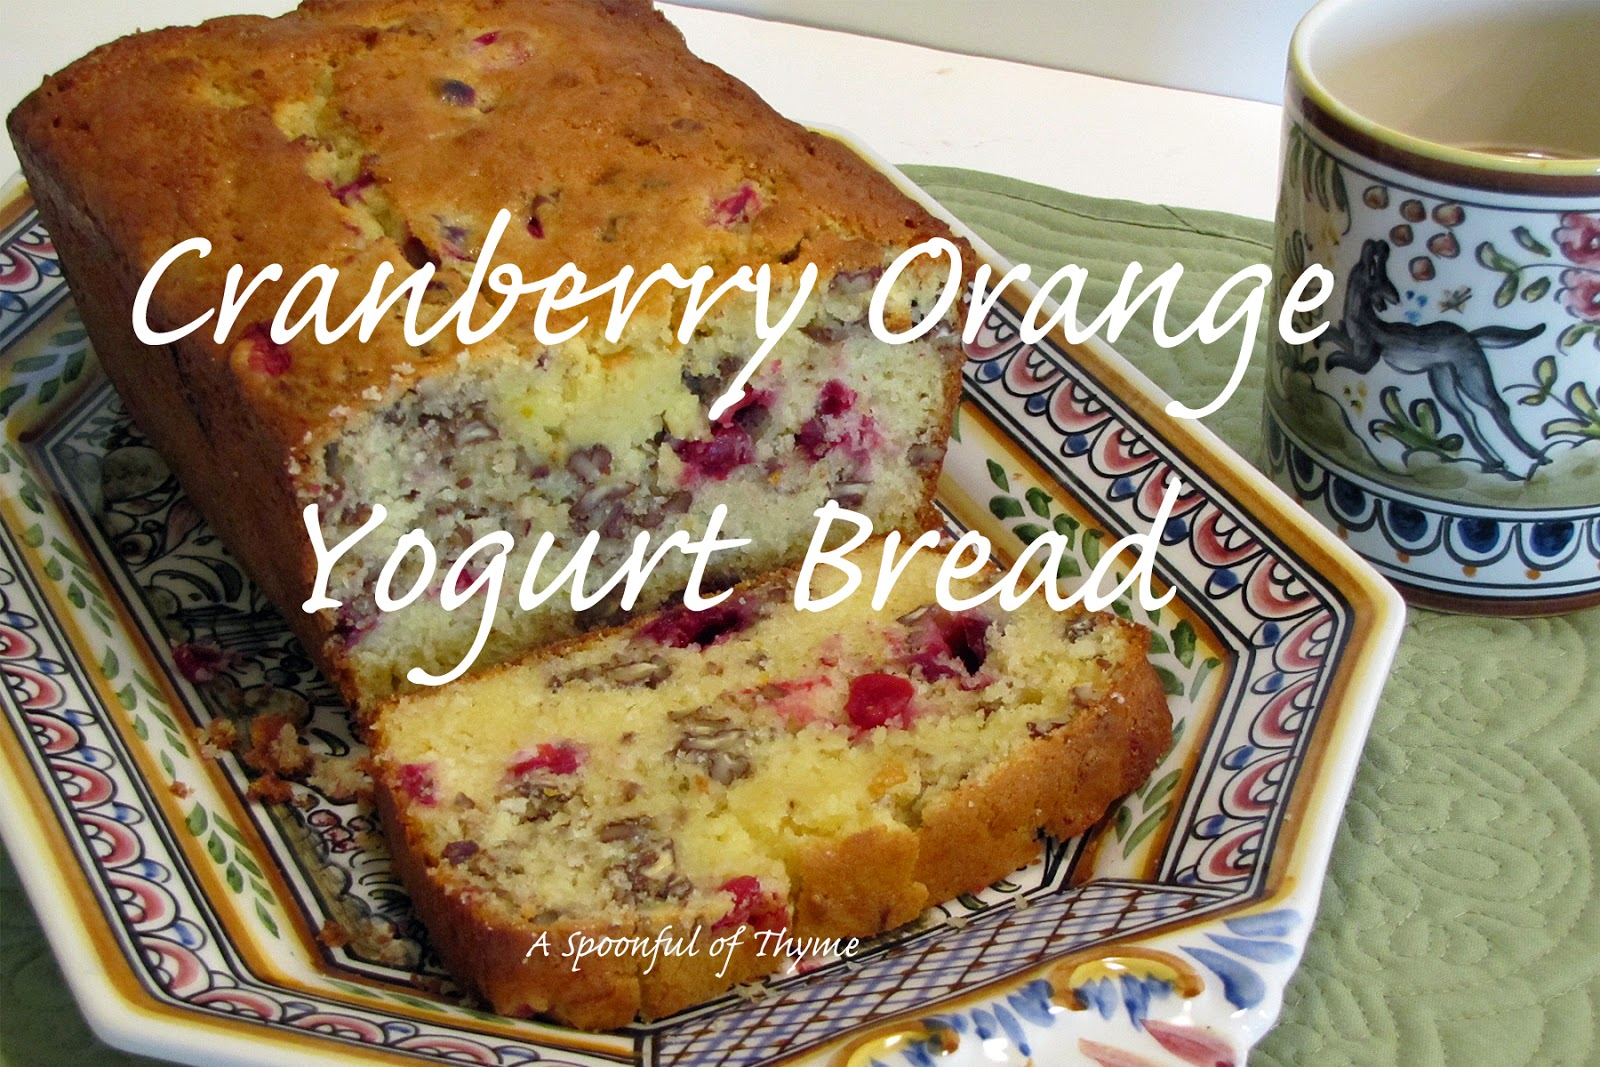 Spoonful of Thyme: Cranberry Orange Yogurt Bread